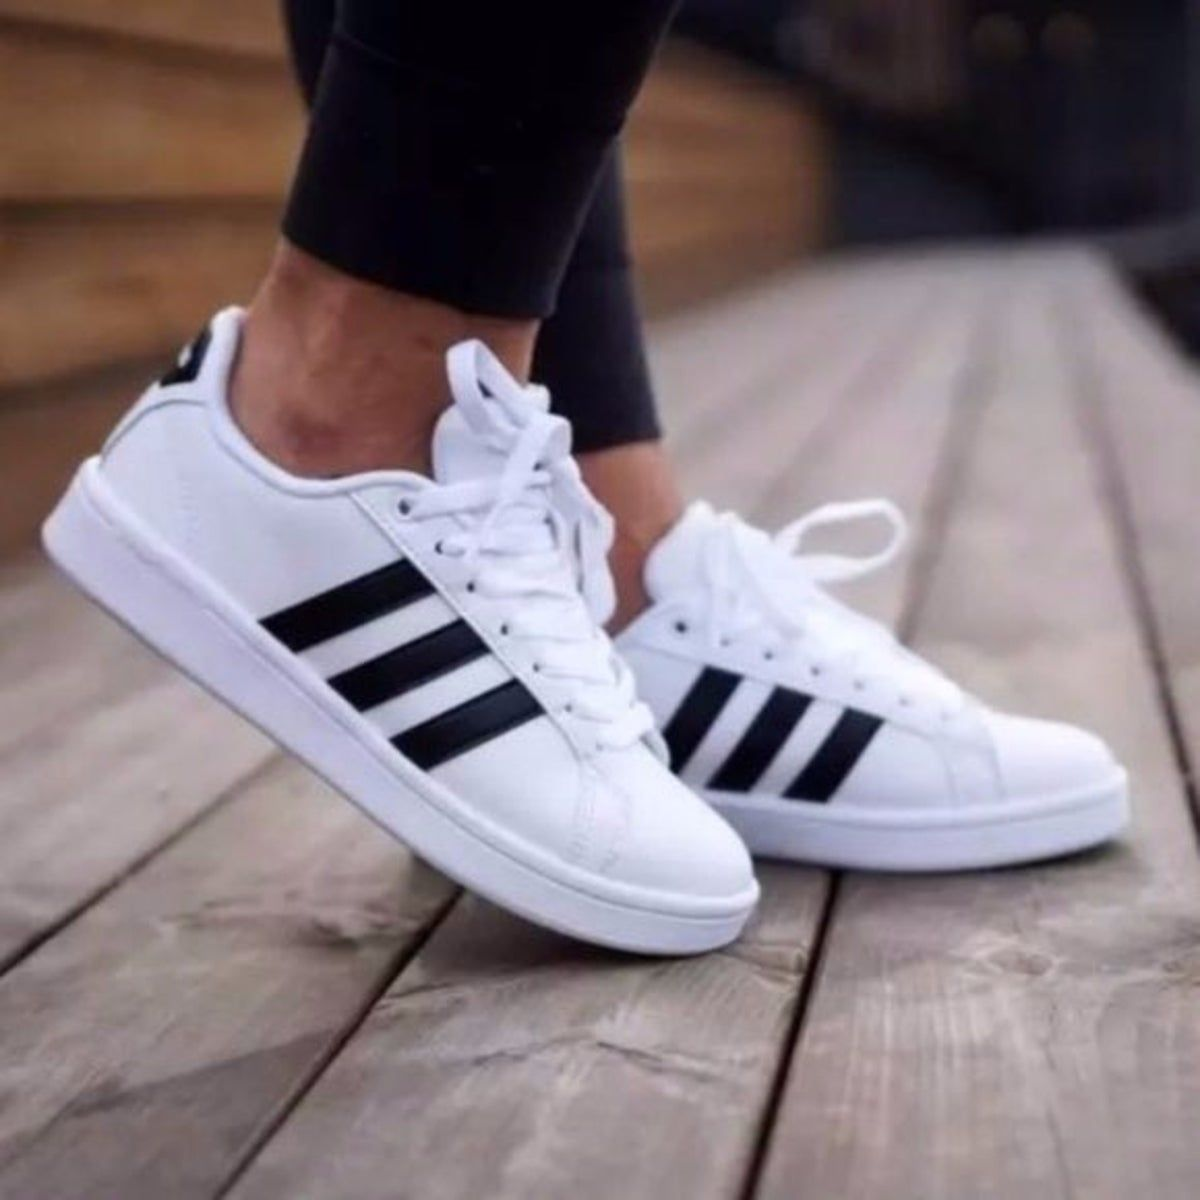 Adidas Women's Grand Court Sneakers in